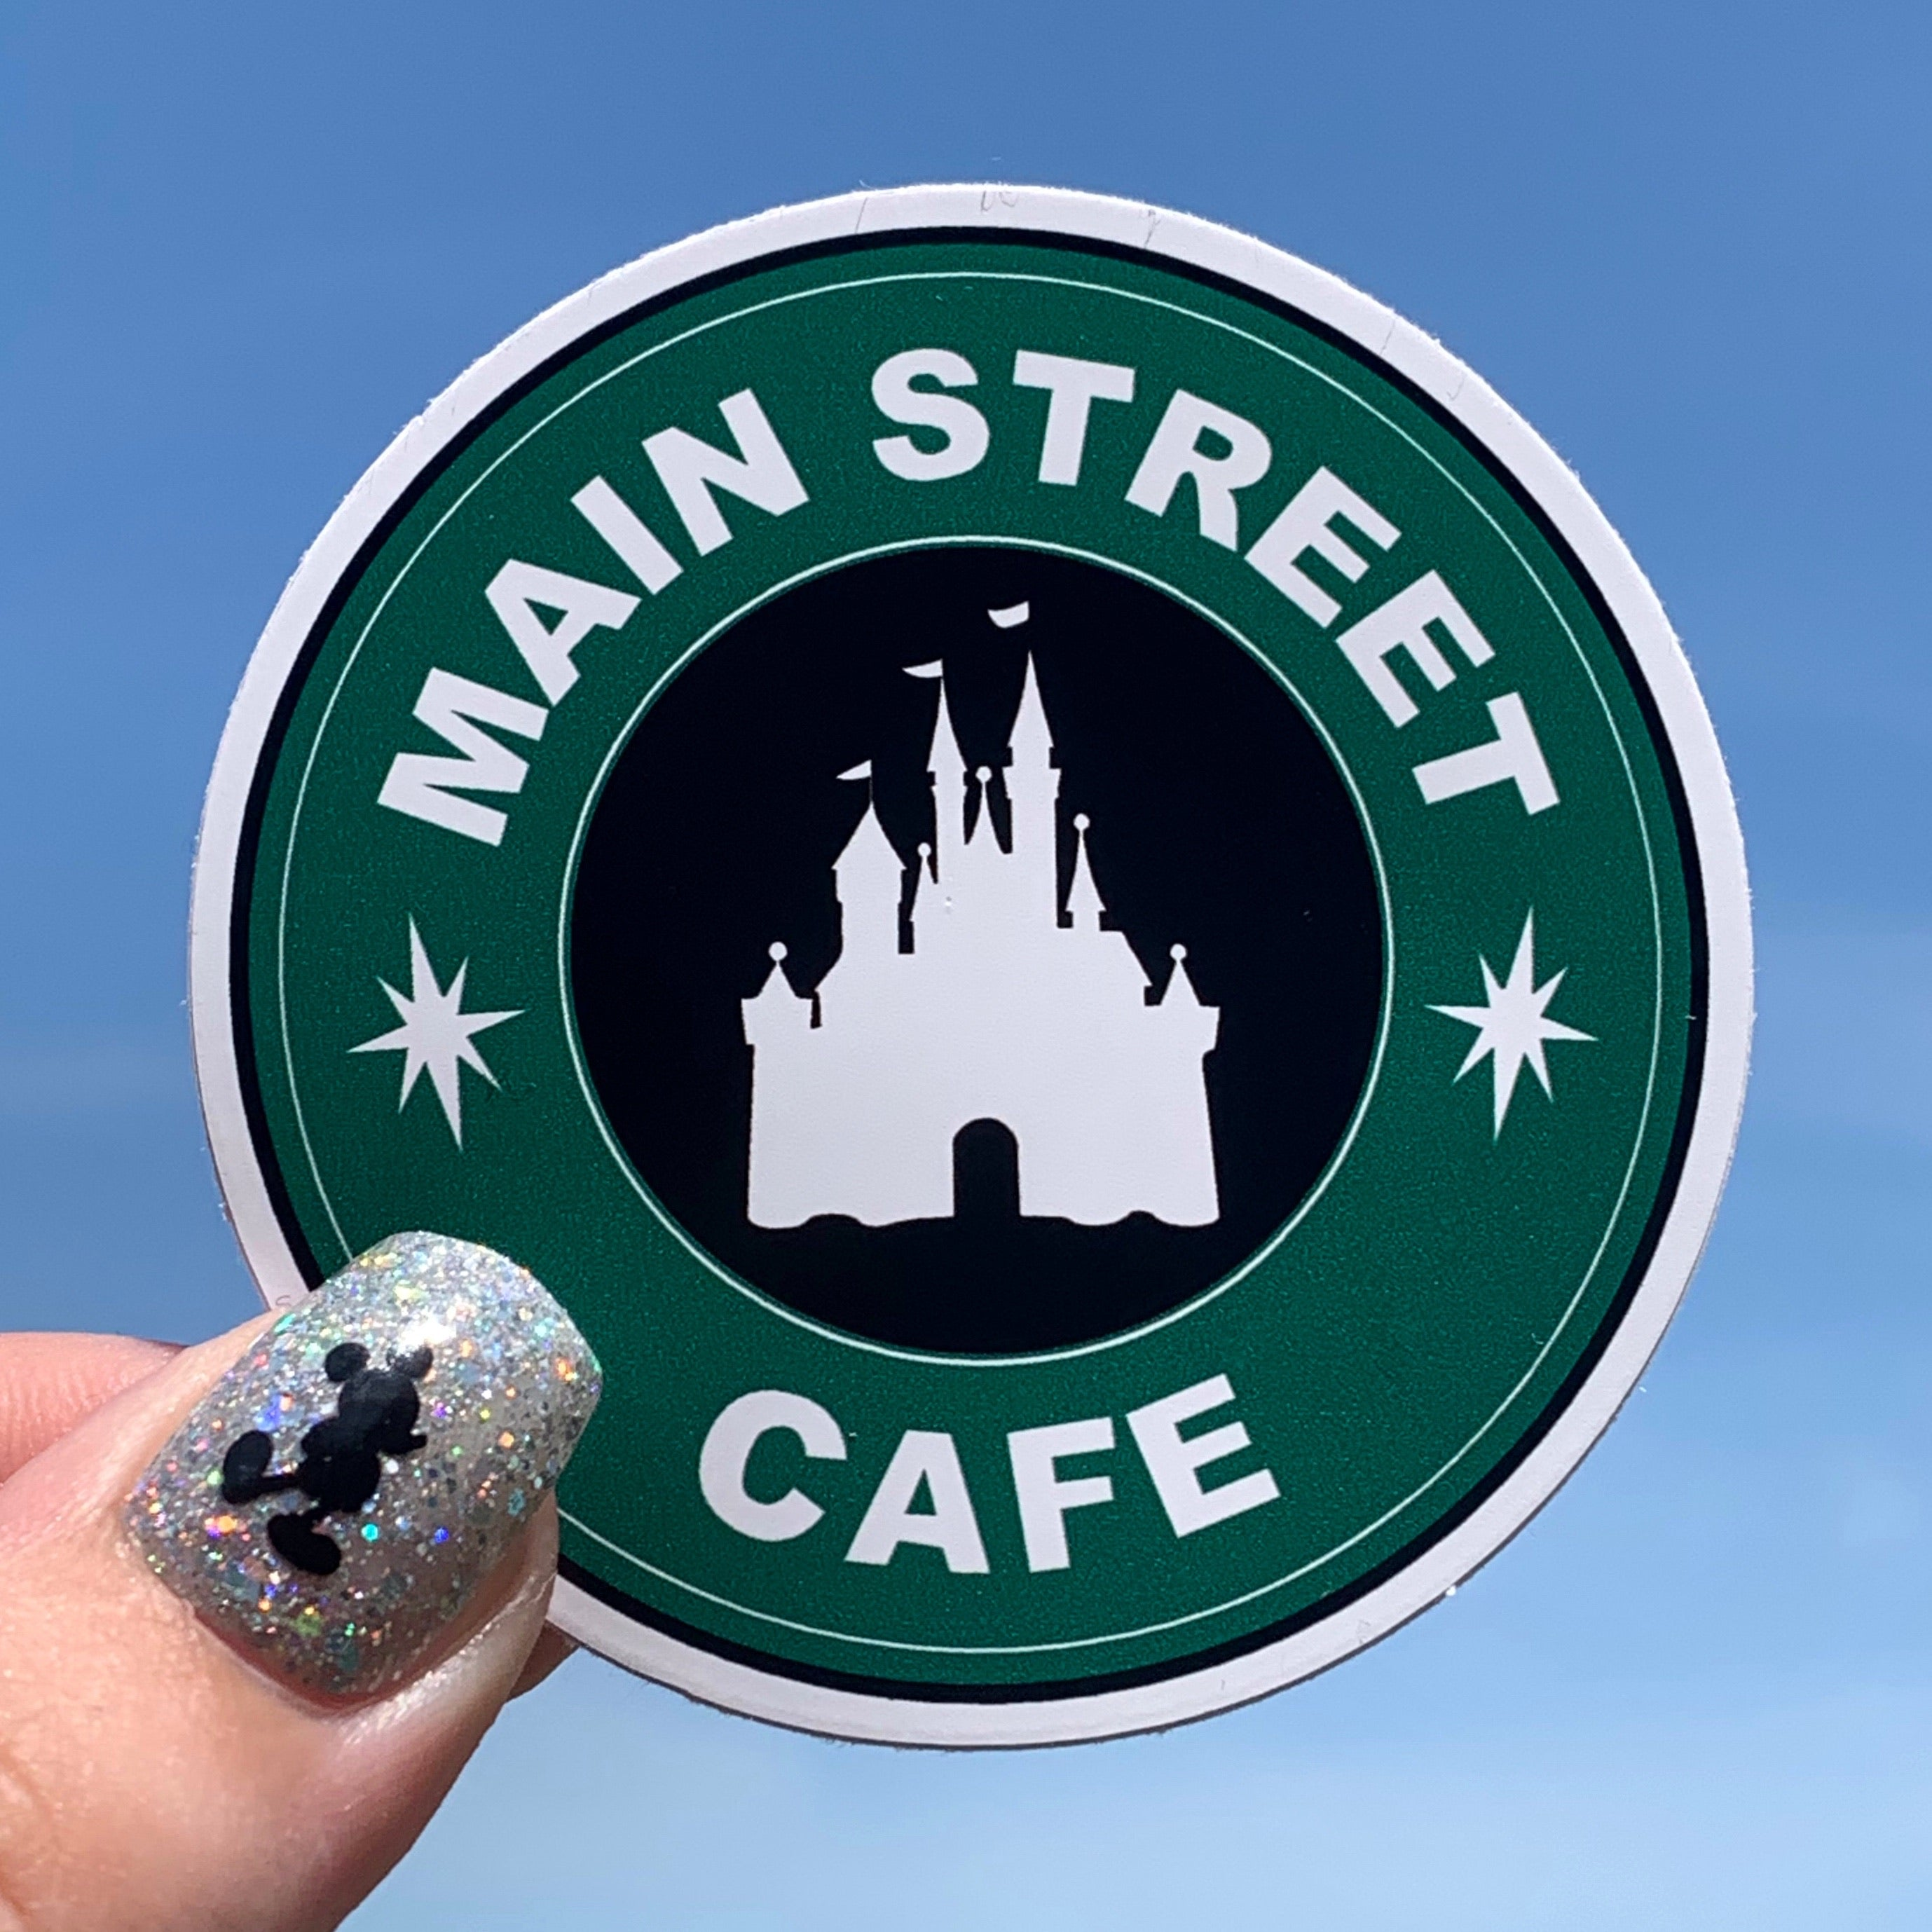 Stickers - Coffee - Main Street Cafe